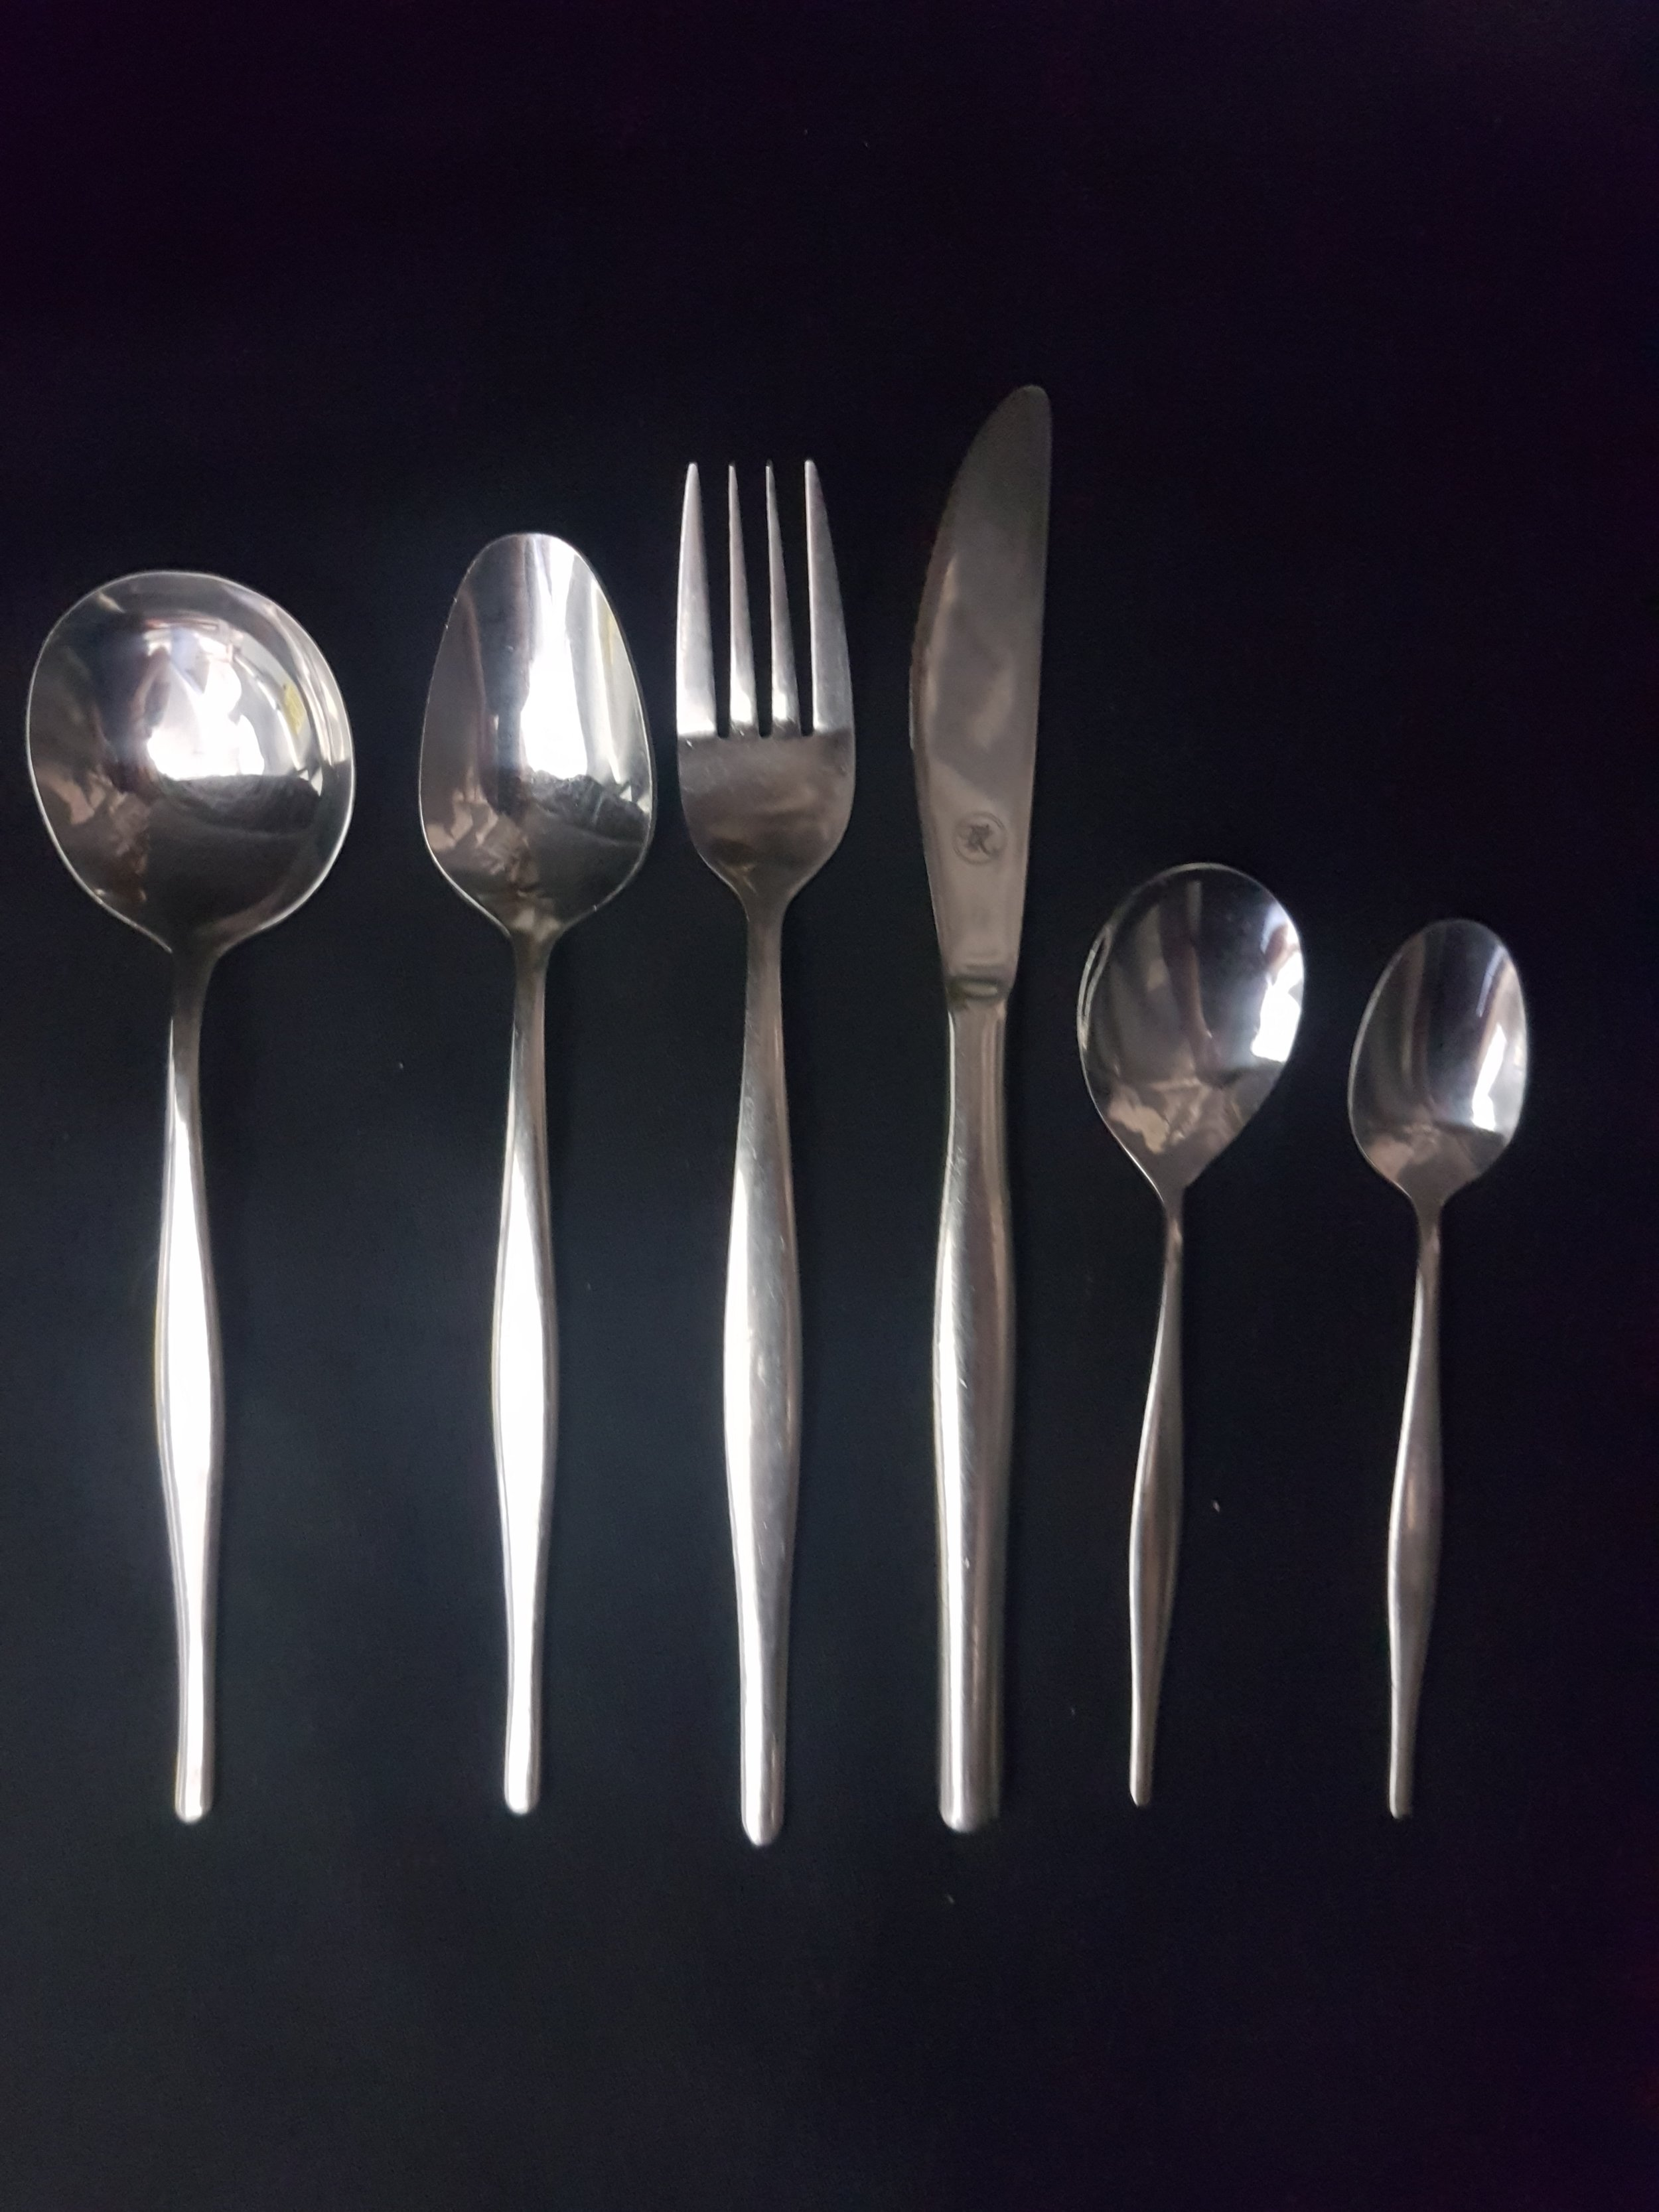 Stainless steel base range - This range is used for large events. Surplus stockSoup spoon .44c eaDessert spoon .44c eaDinner fork .44c eaDinner knife .44c eaFruit spoon .39c eaTeaspoon .39c ea